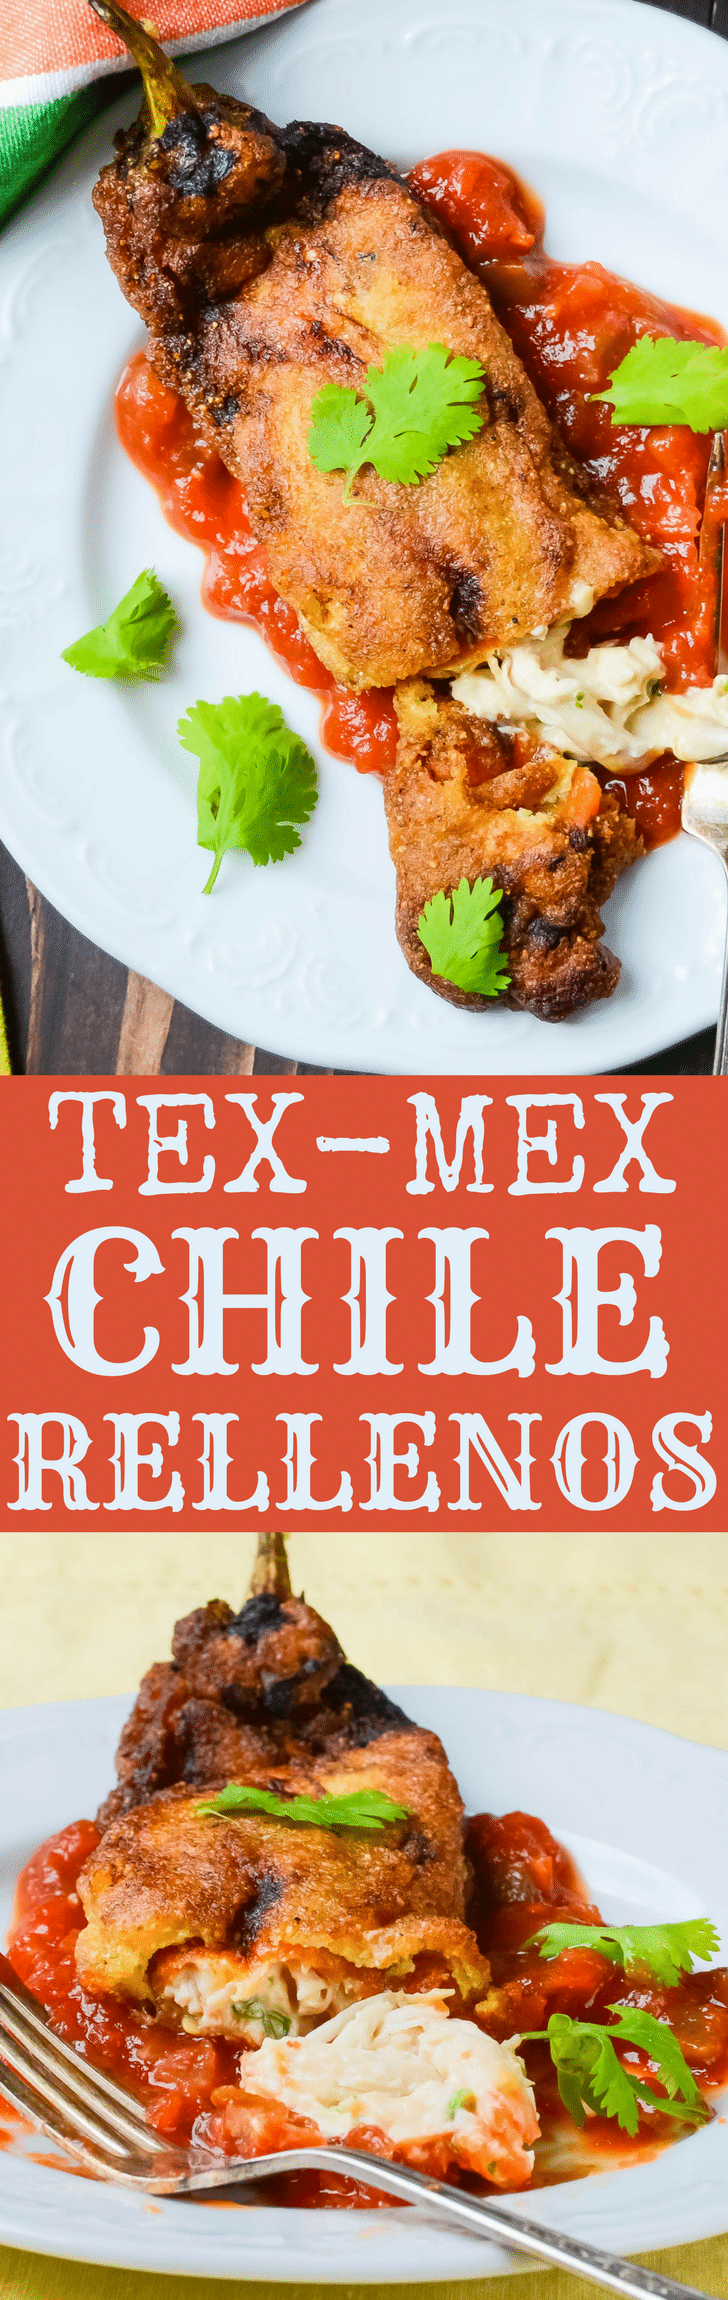 This stuffed chile rellenos recipe uses fire roasted hatch chiles and cheesy chicken filling with a simple chile relleno batter. Tex-Mex Chicken Chile Rellenos are crispy, tender and delicious. #chiles #chilerellenos #chilerellenosrecipe #chicken #stuffedpeppers #friedpeppers #friedchiles #texmex #cincodemayorecipes #stuffedfriedchiles #rellenos #cheese #creamcheese #cheddarcheese #chilerellenobatter #stuffedchilerellenosrecipe